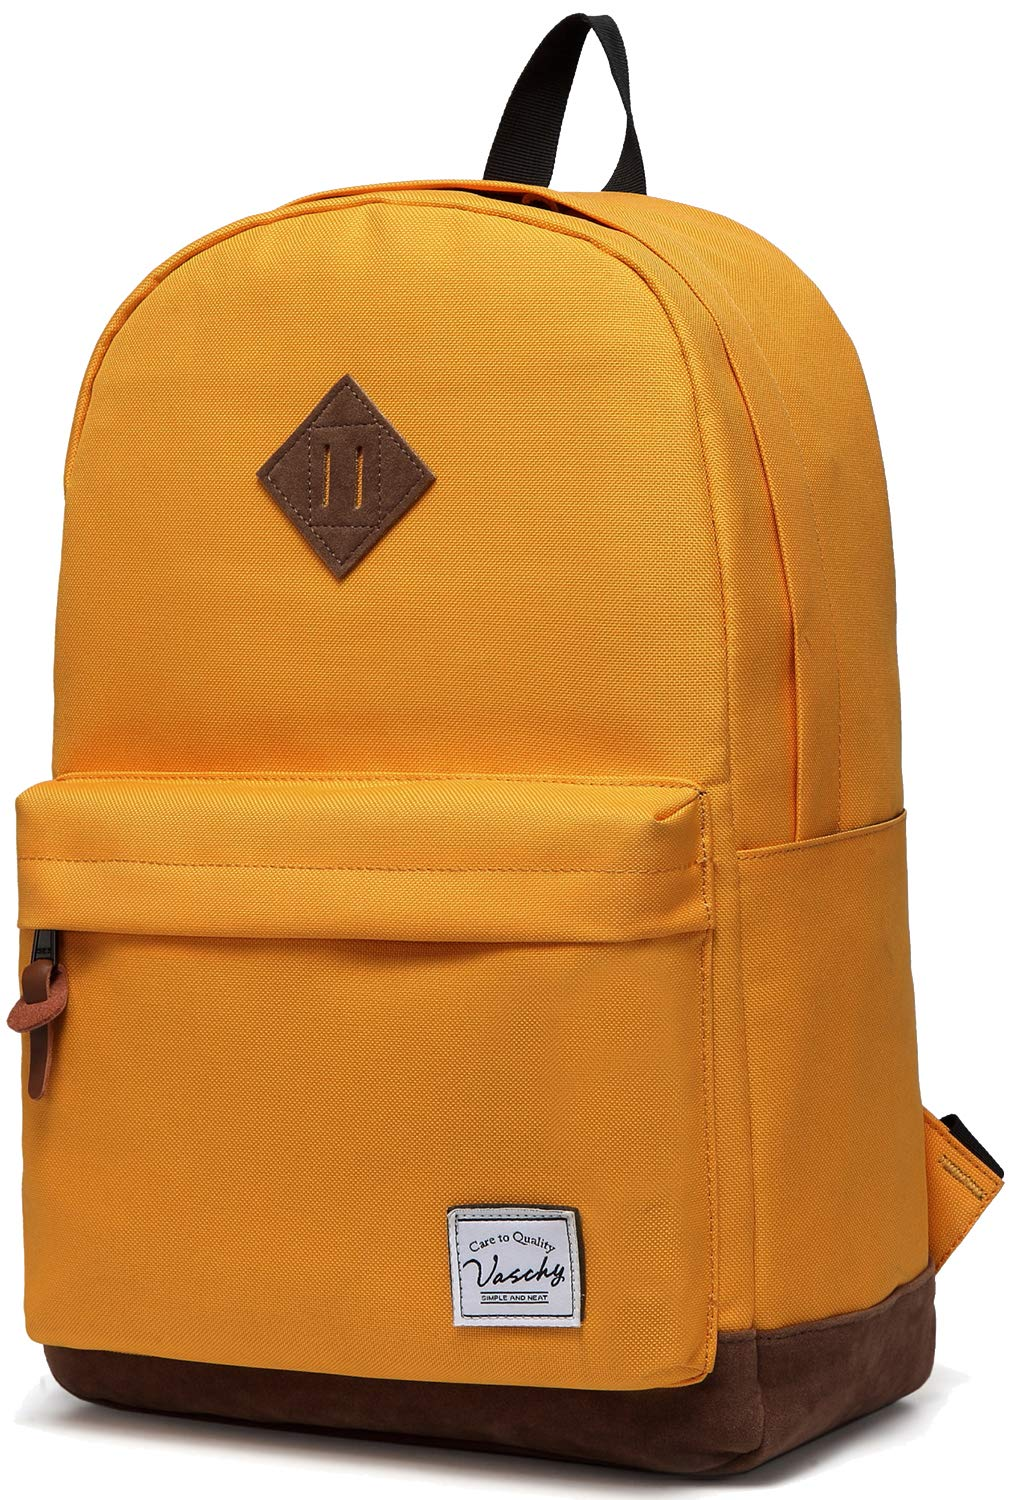 Vaschy Unisex Classic Water Resistant School Backpack Bookbag for College Fits 14Inch Laptop Yellow by VASCHY